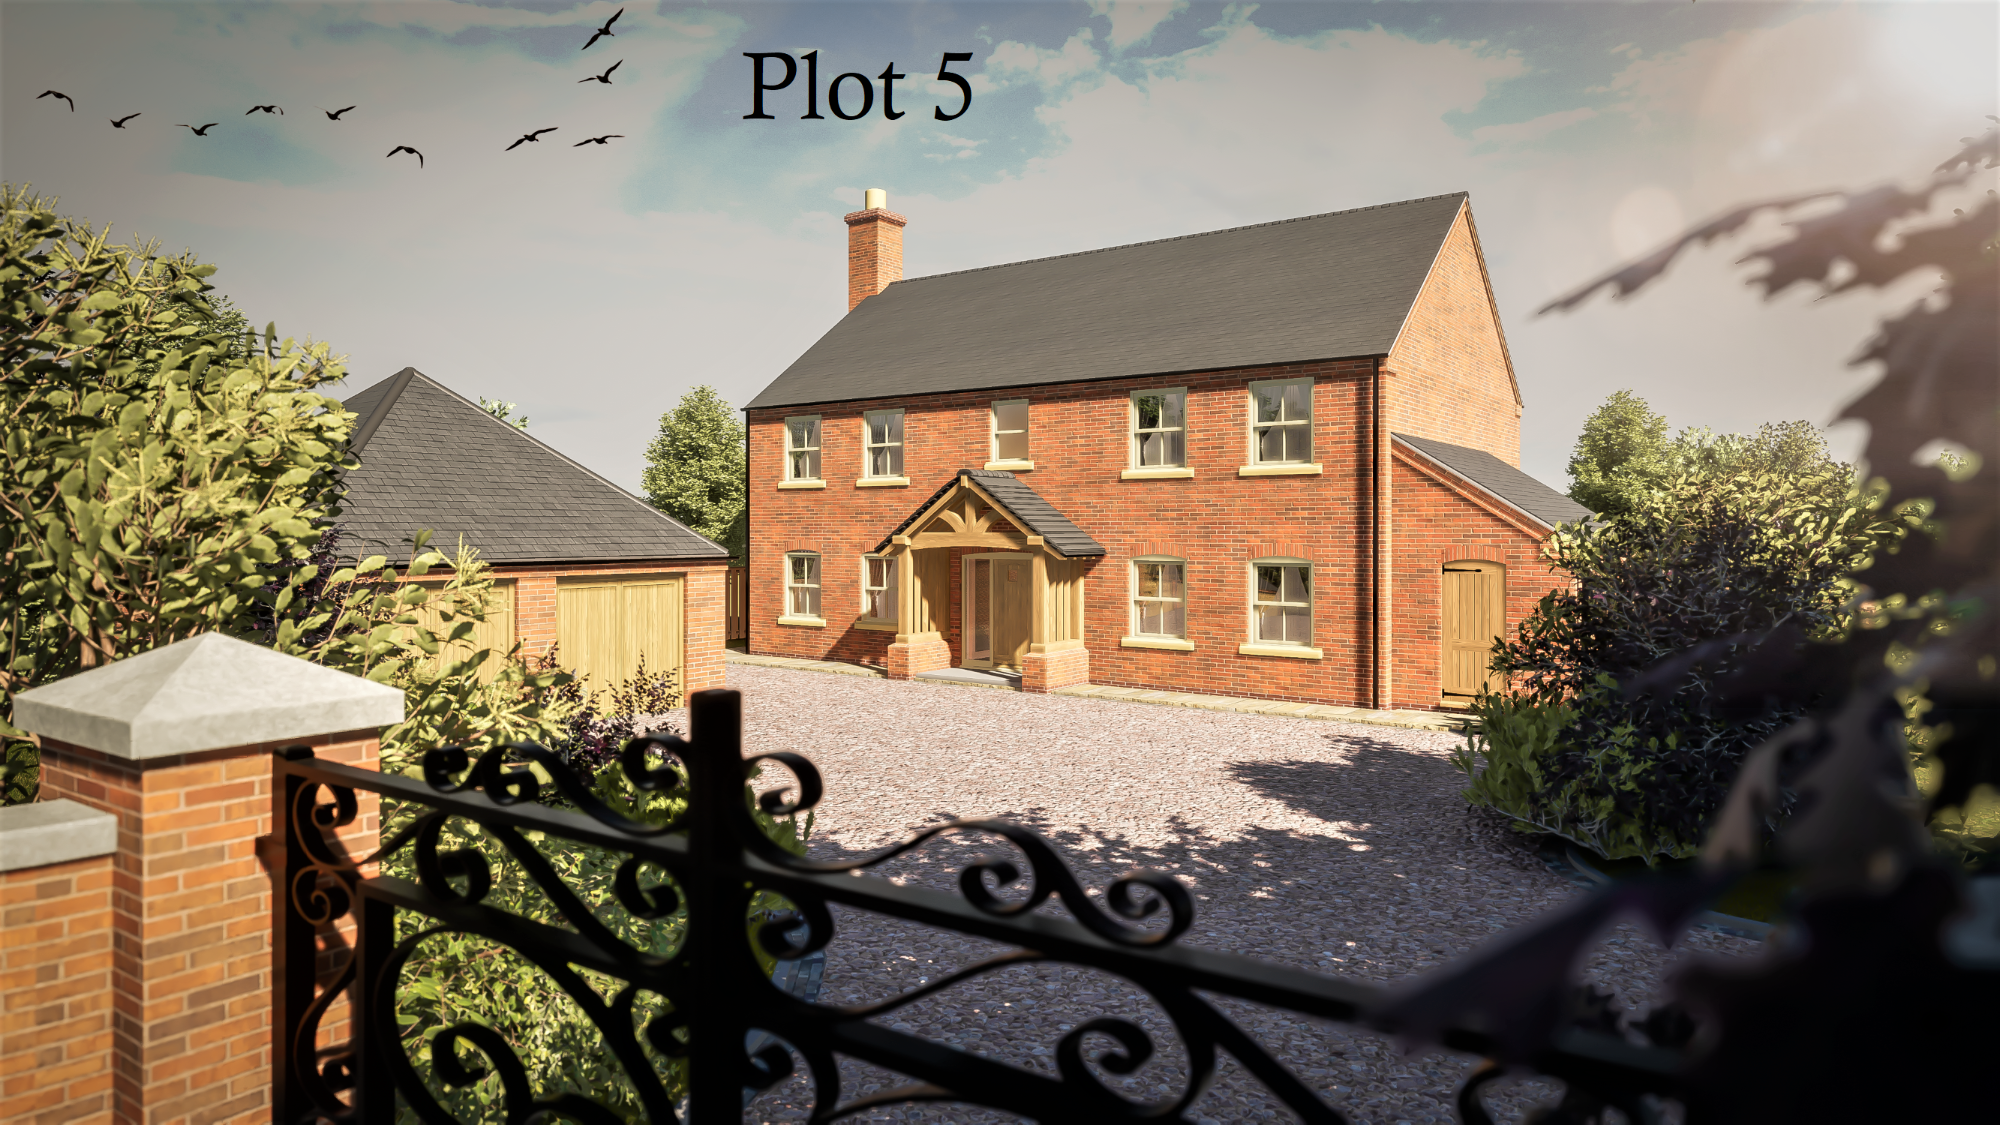 Plot 5 White House Farm - Plots with full planning permission in Lincolnshire